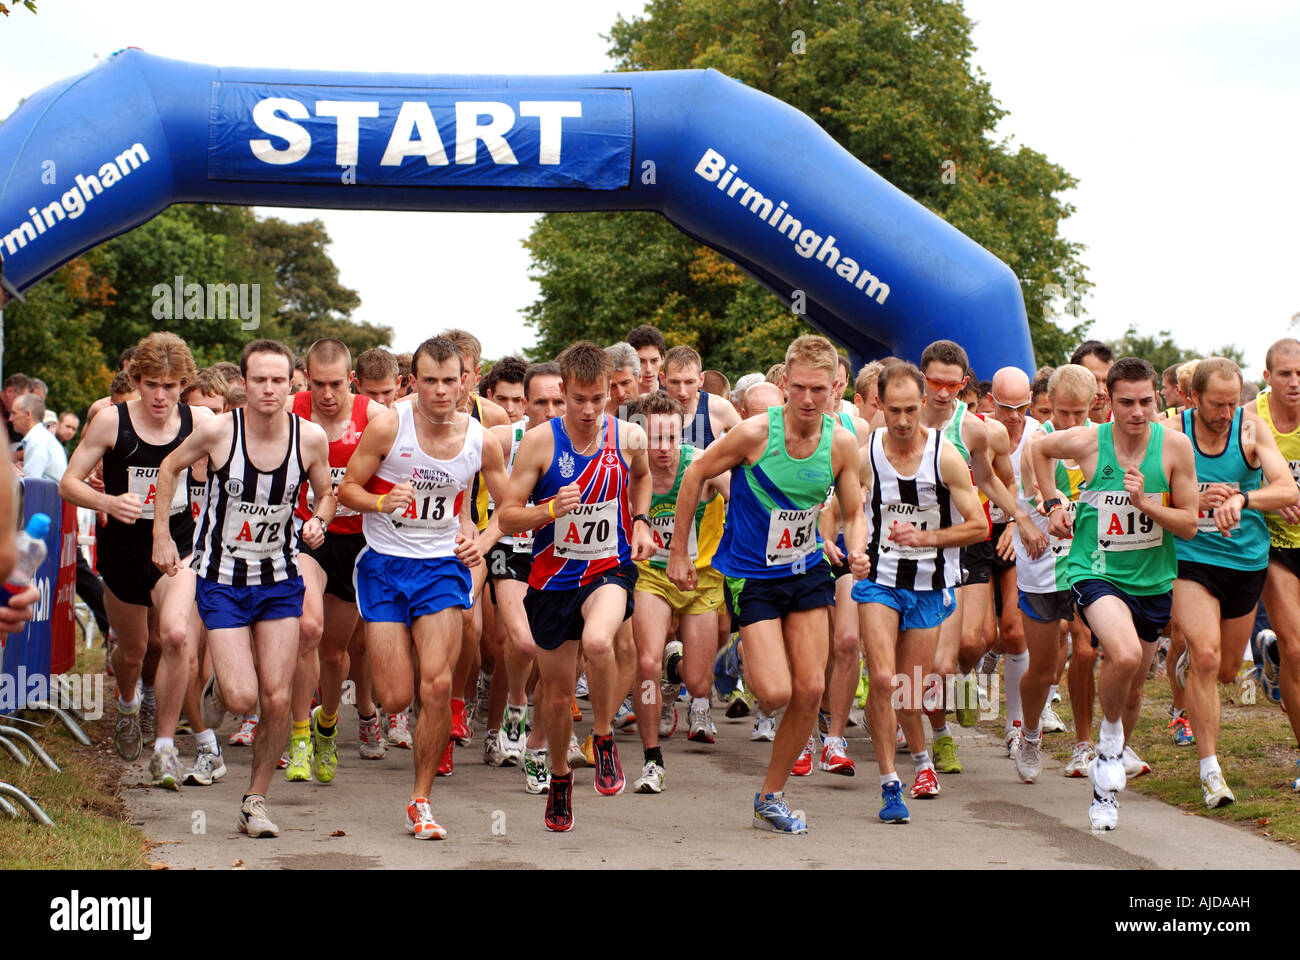 Start of men`s Midland 6 stage Road Relay race, Sutton Park, West Midlands, England, UK - Stock Image